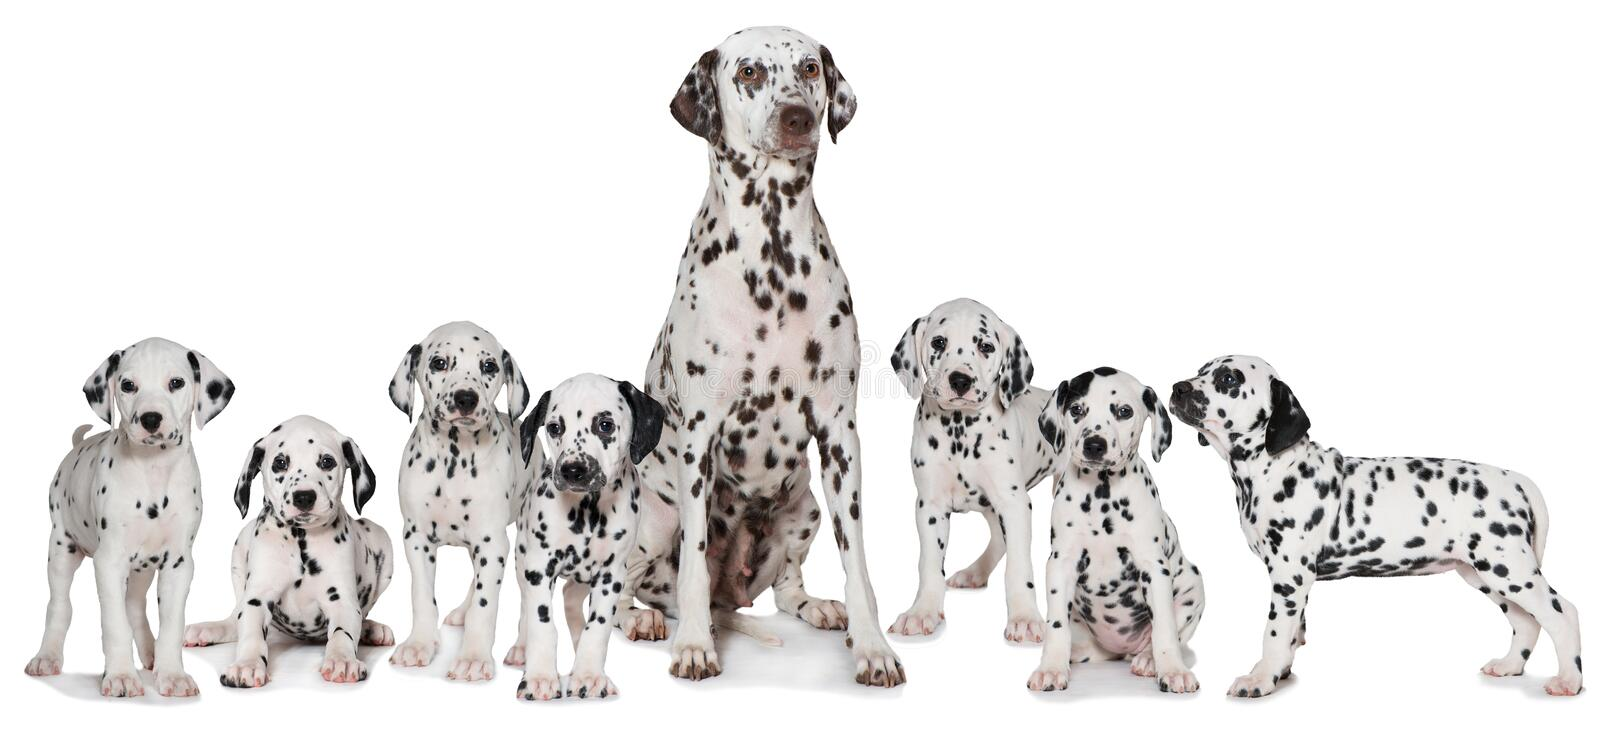 Adult dalmatian dog with puppies. Adult dalmatian dog with many puppies isolated on white background royalty free stock photography